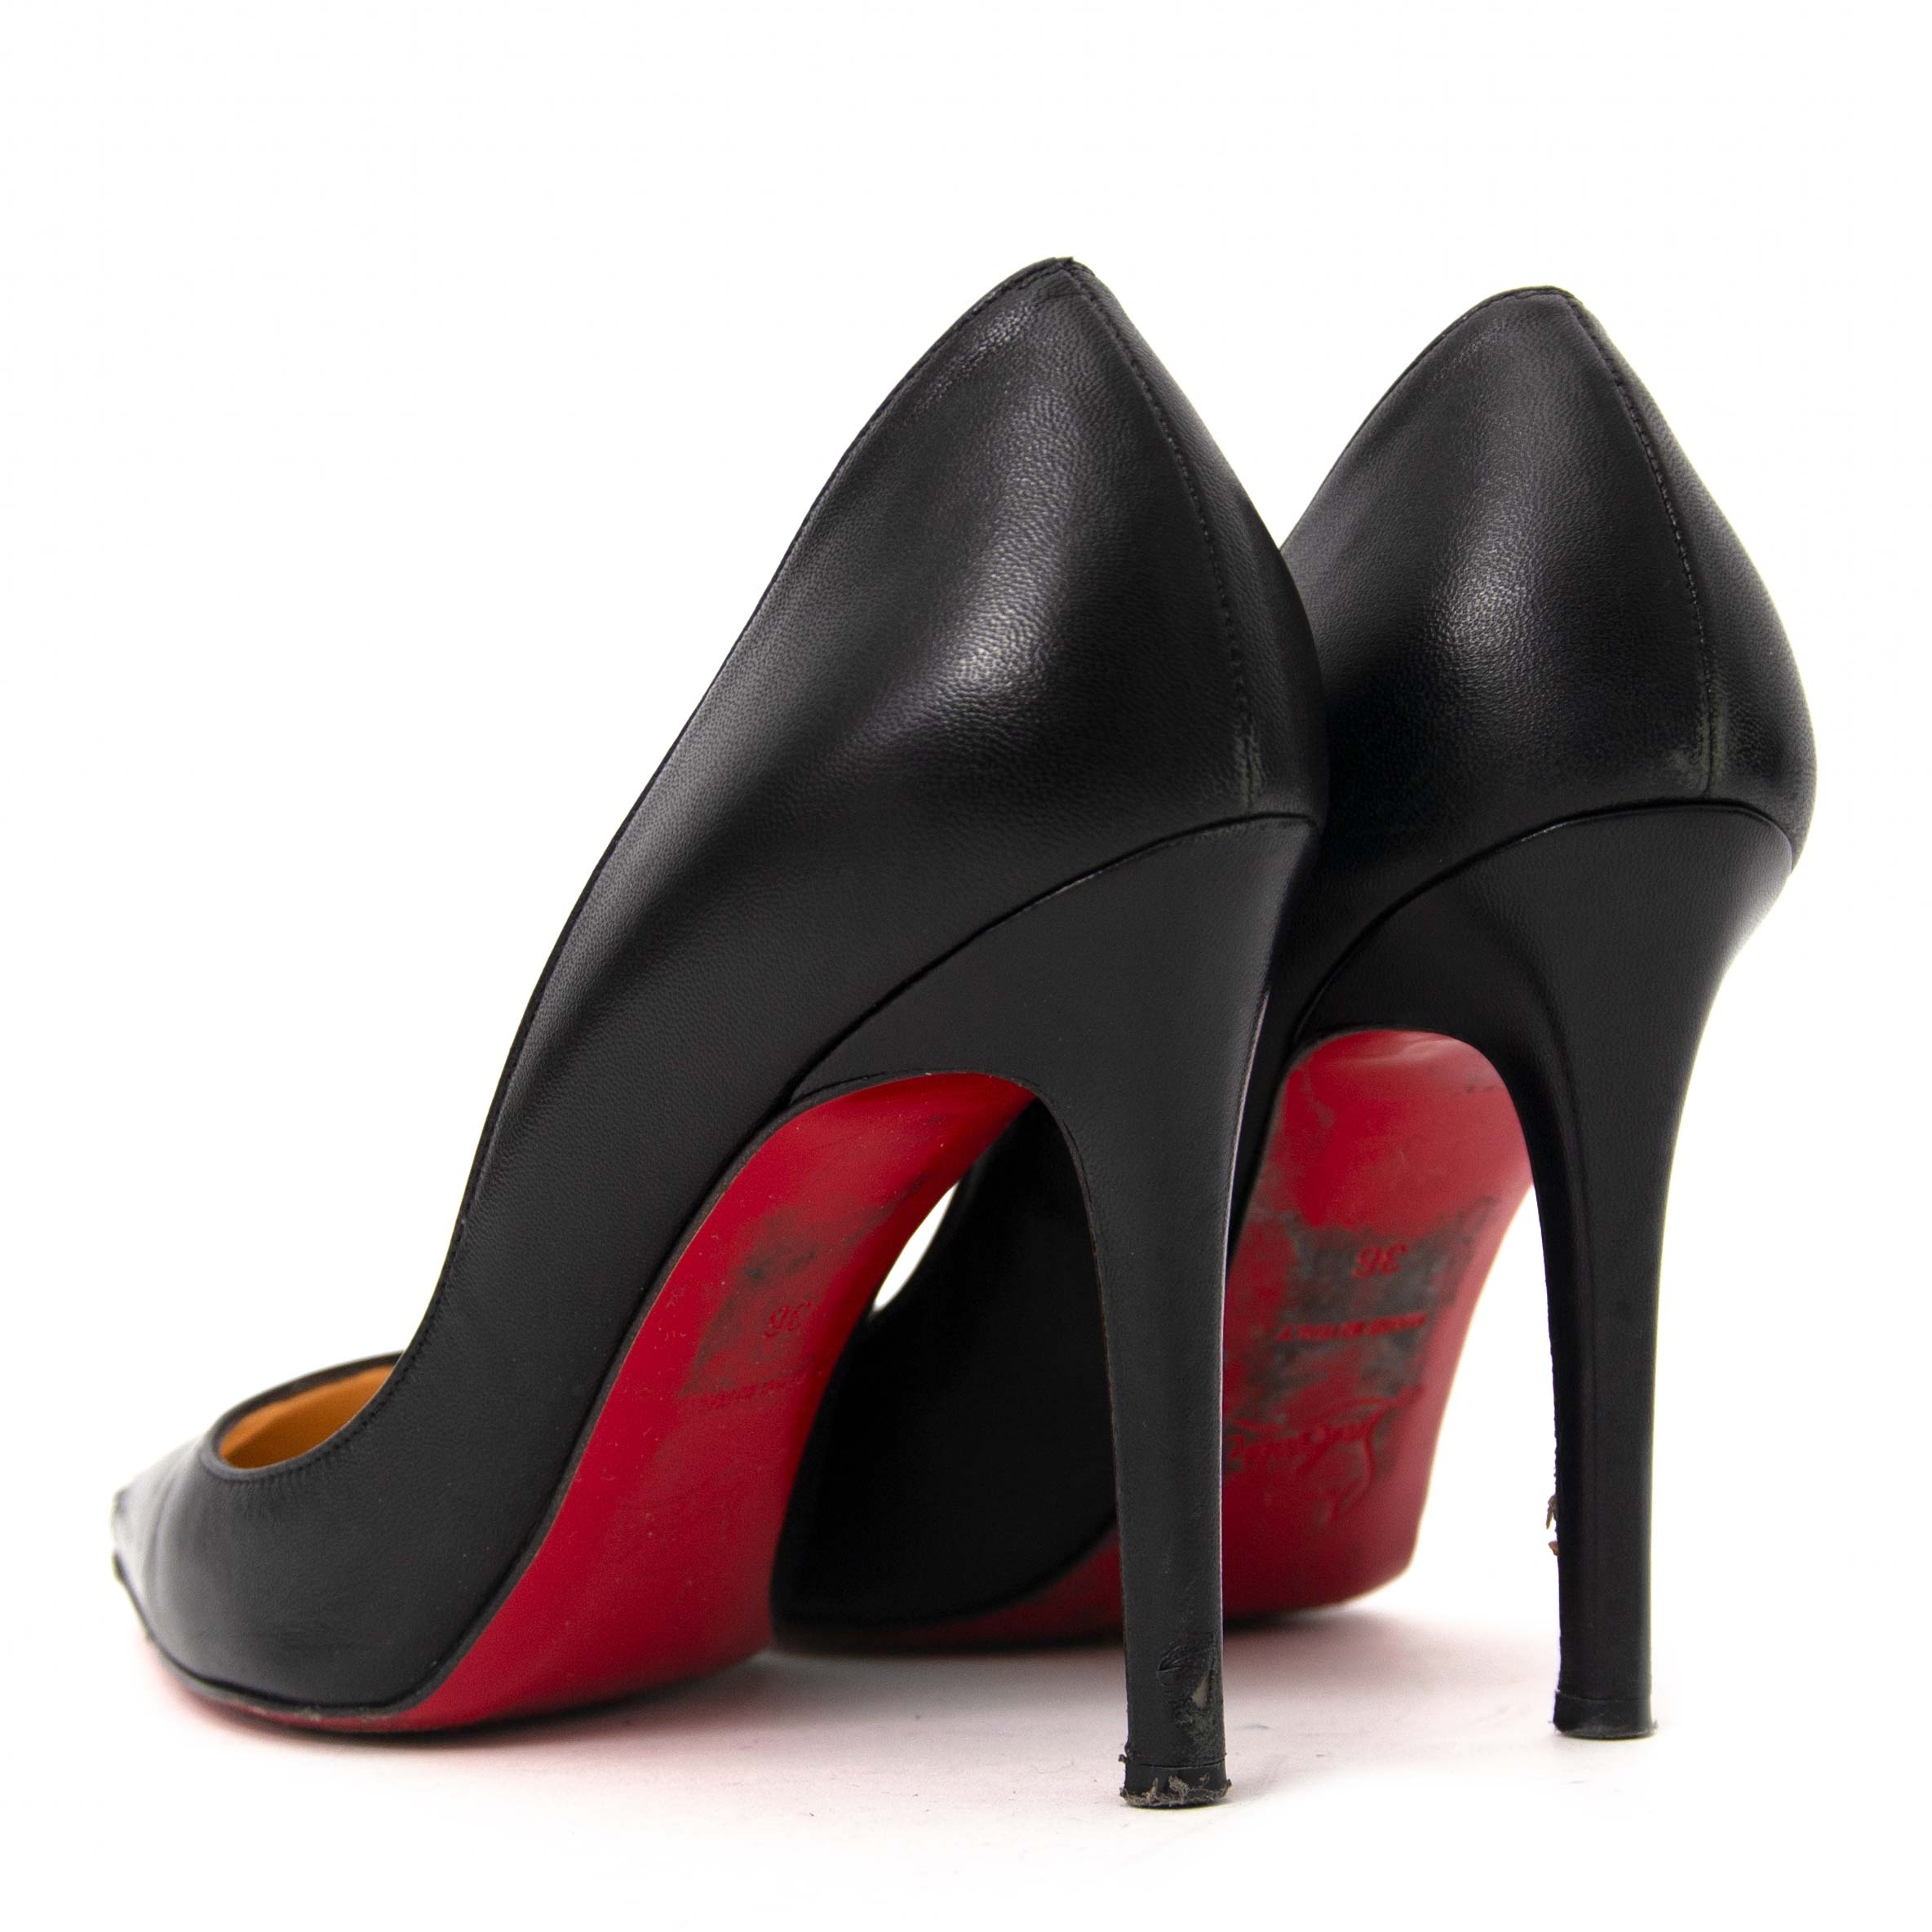 d8c3782ba733 ... buy secondhand authentic Christian Louboutin So Kate 100 Black Leather  Pumps for less at Labellov